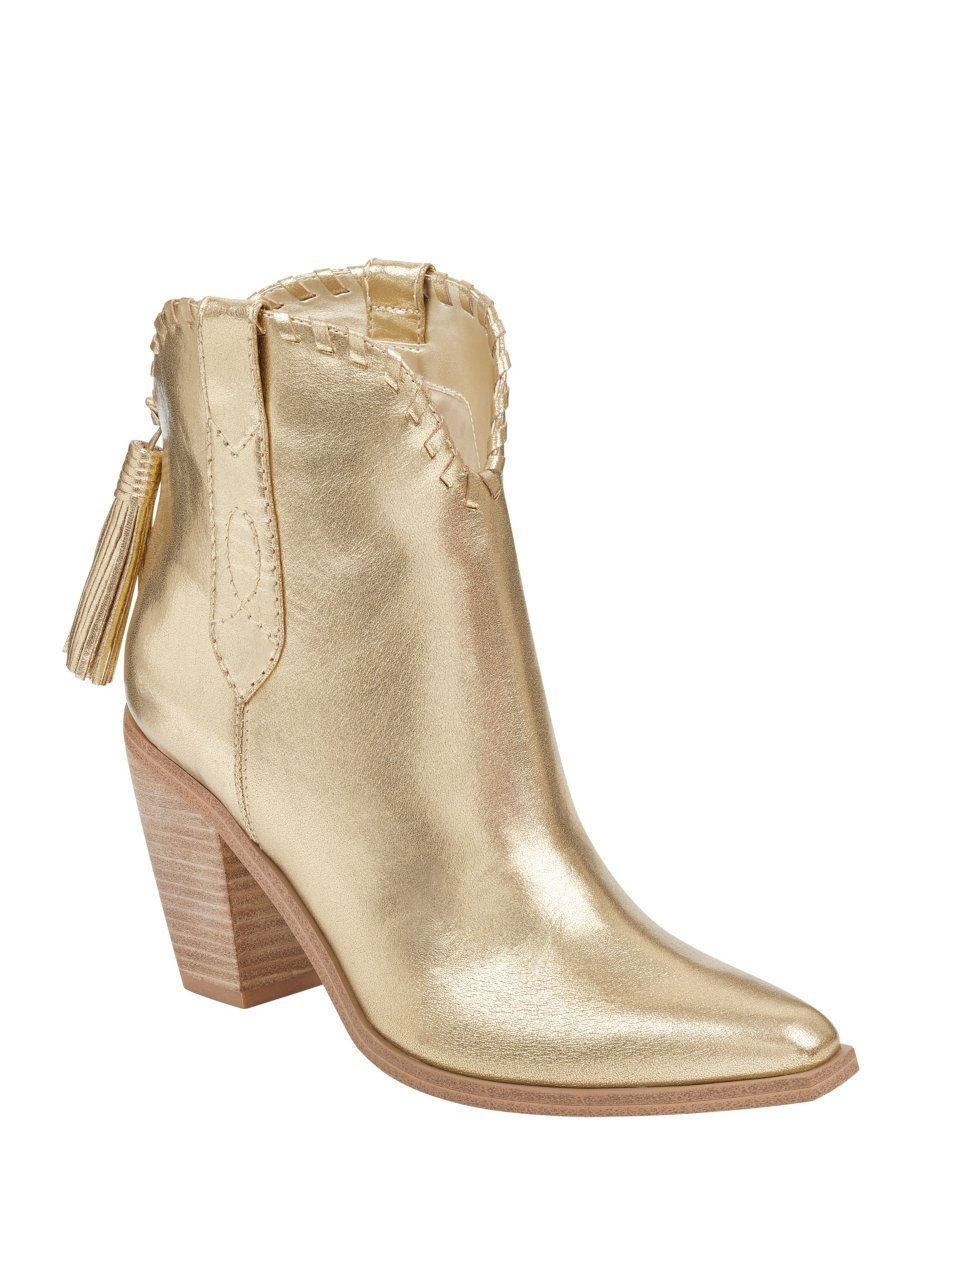 GUESS Women's Rodeo Faux-Leather Western Booties B07BKZVB4M 5.5 M US|Gold